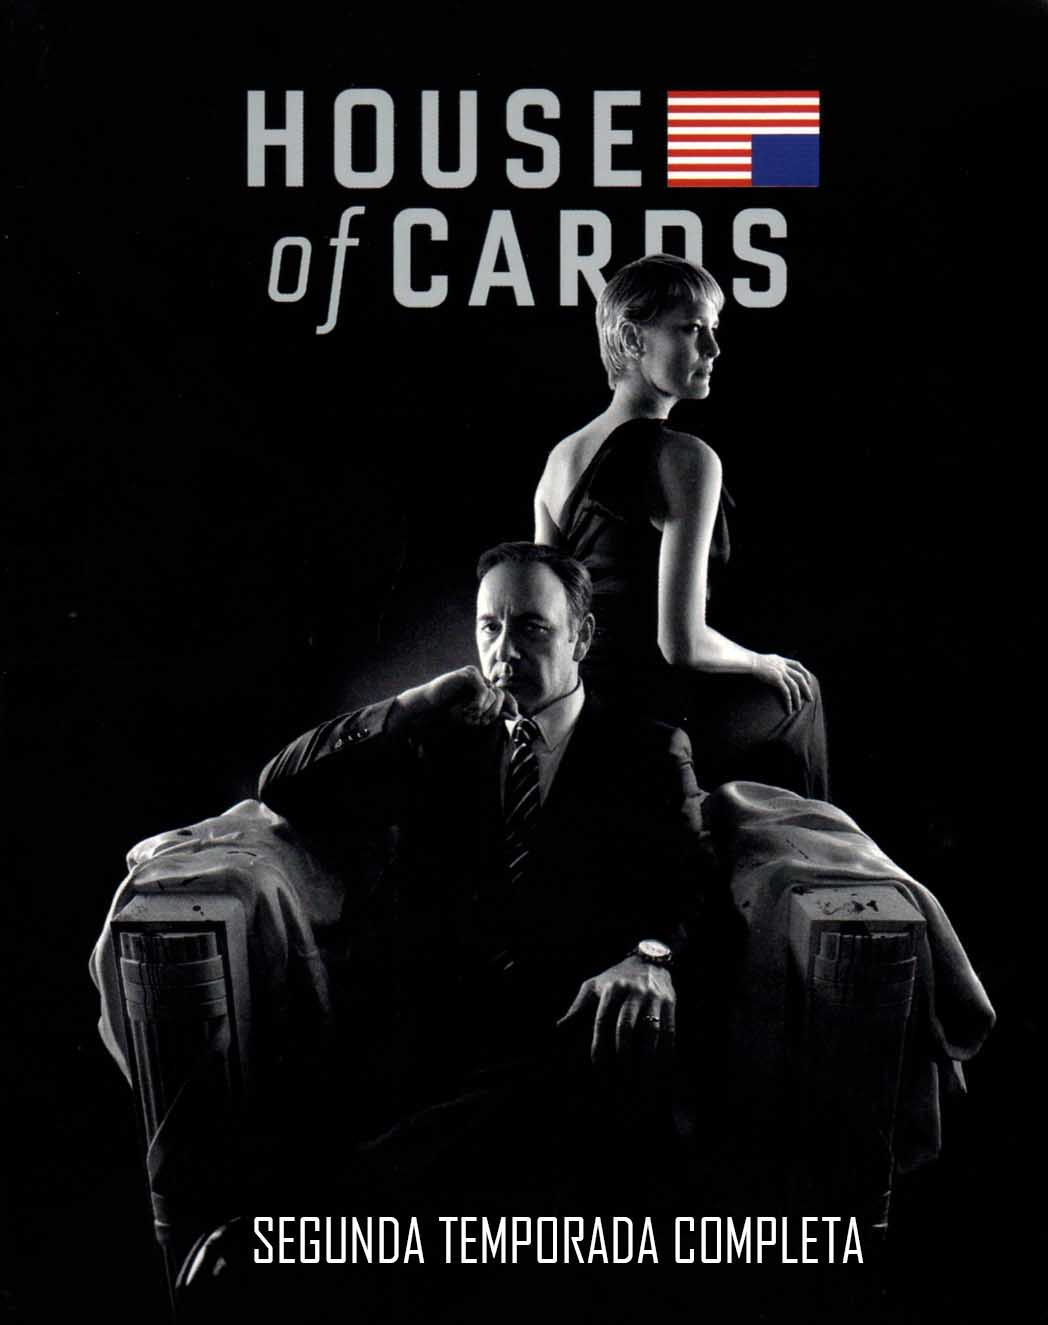 House of Cards 2ª Temporada Torrent - Blu-ray Rip 720p Dual Áudio (2014)